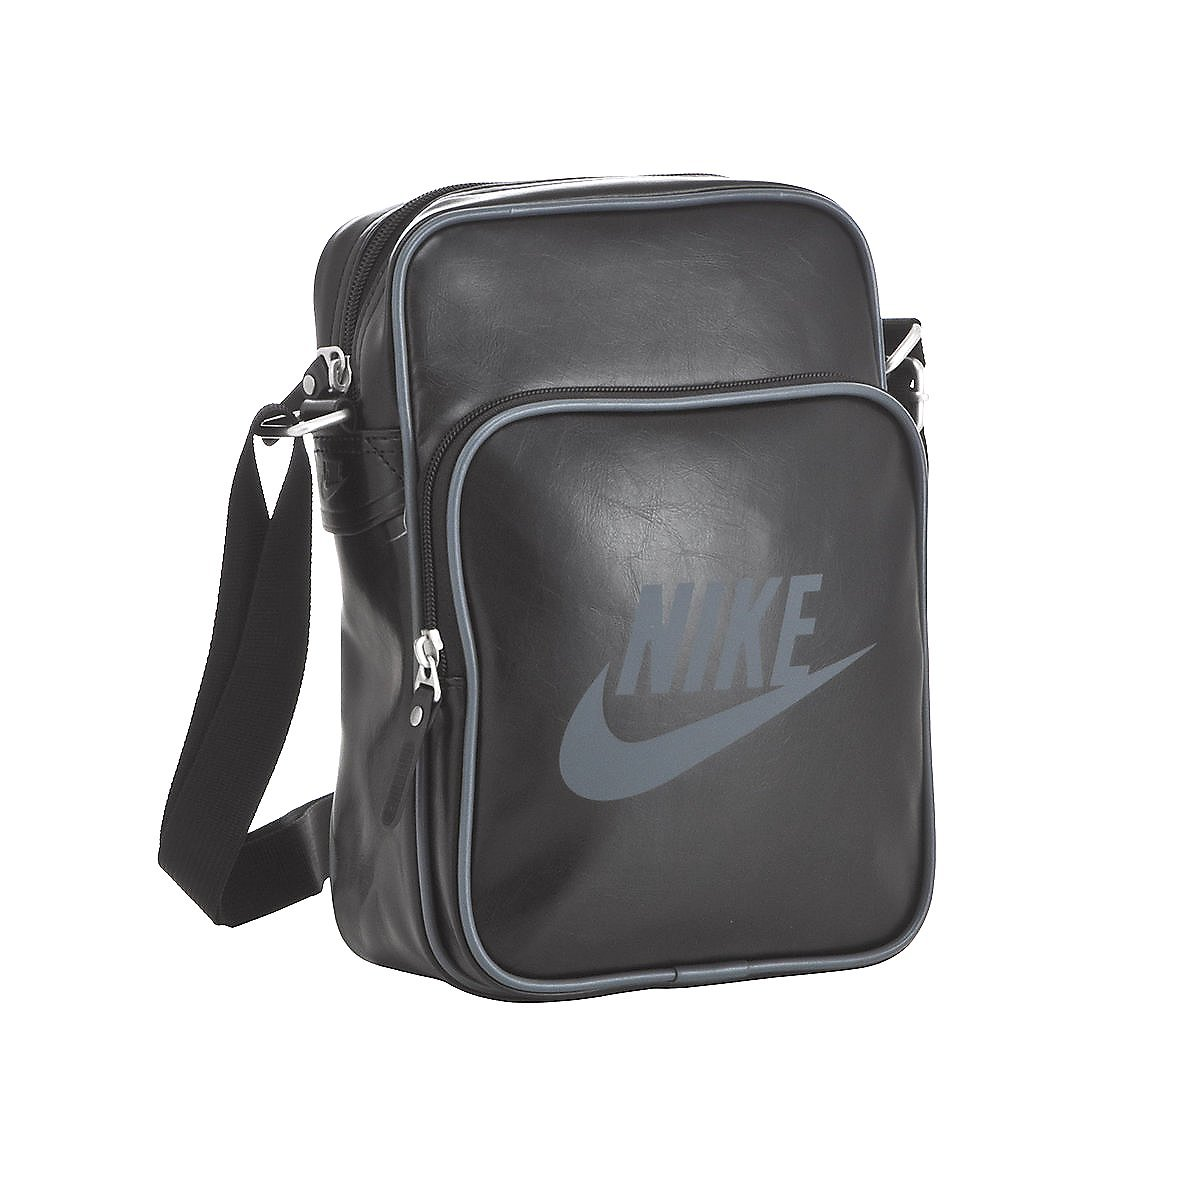 94a55b5b44 NIKE Men s Shoulder Bag  Amazon.co.uk  Shoes   Bags